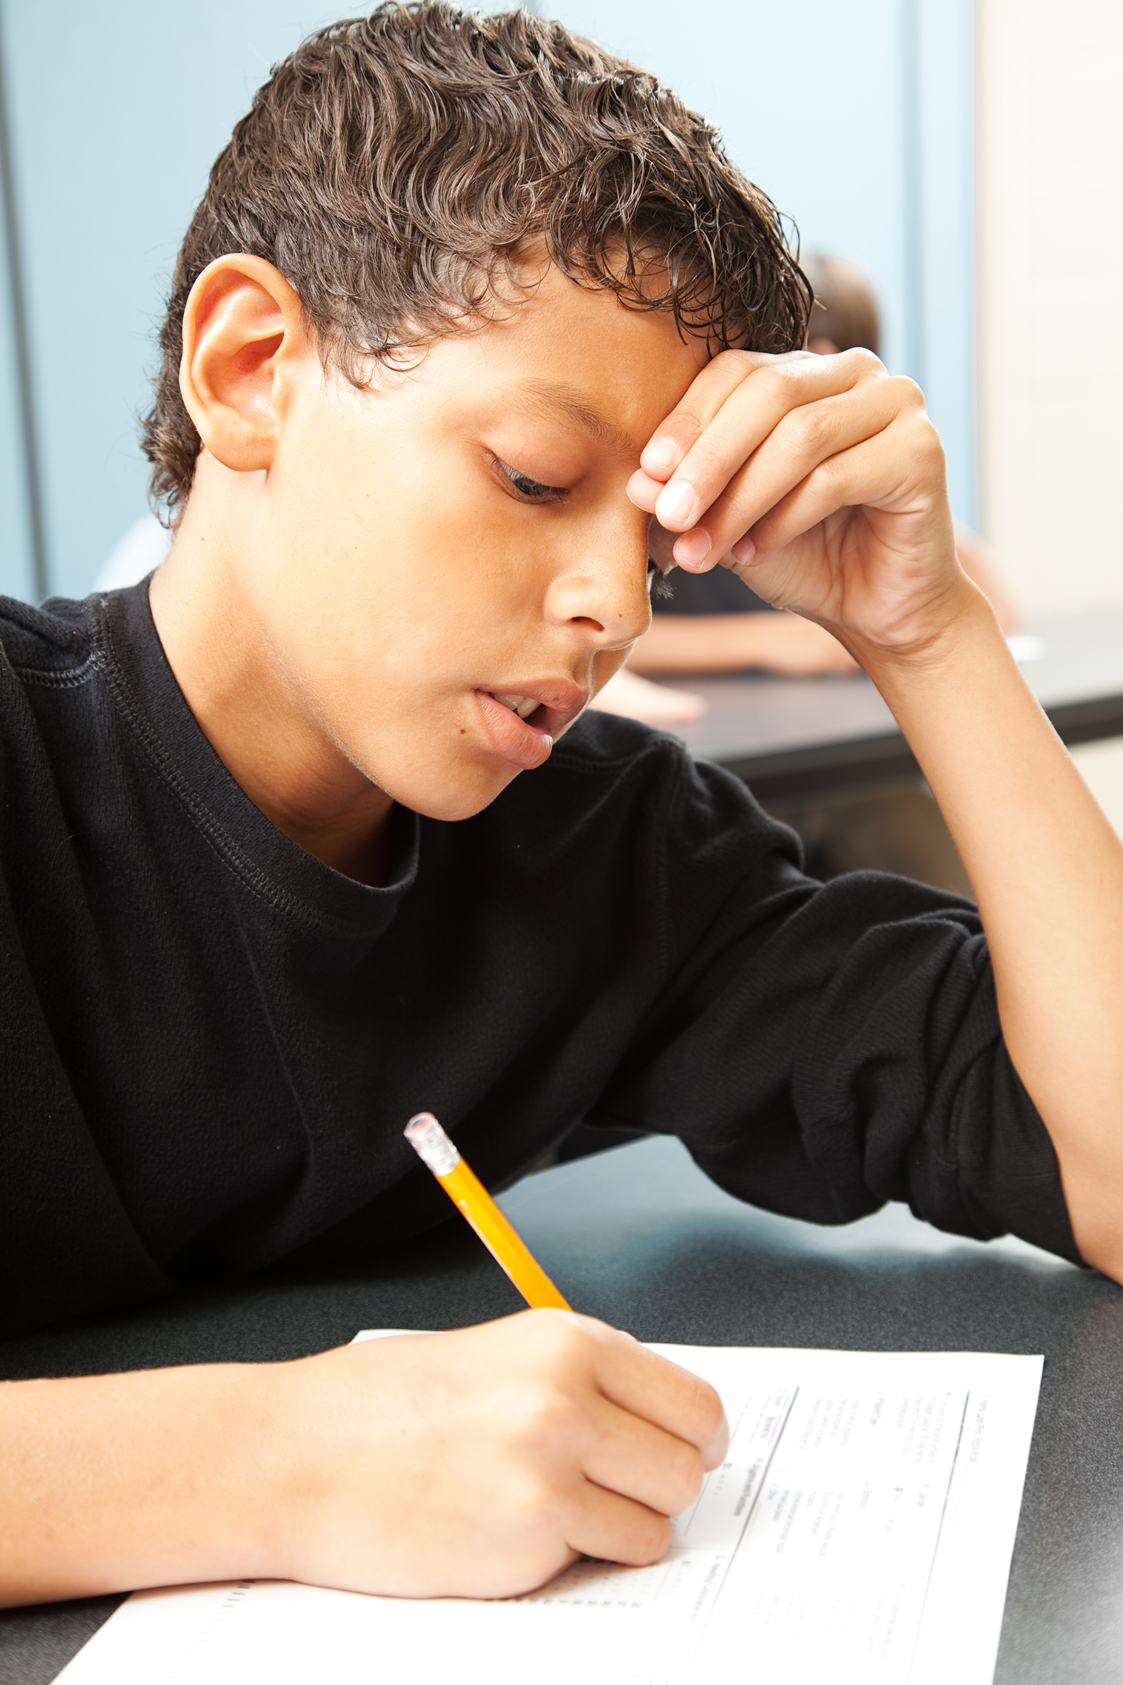 Stock photo showing school aged boy writing on school work and holding head with one hand